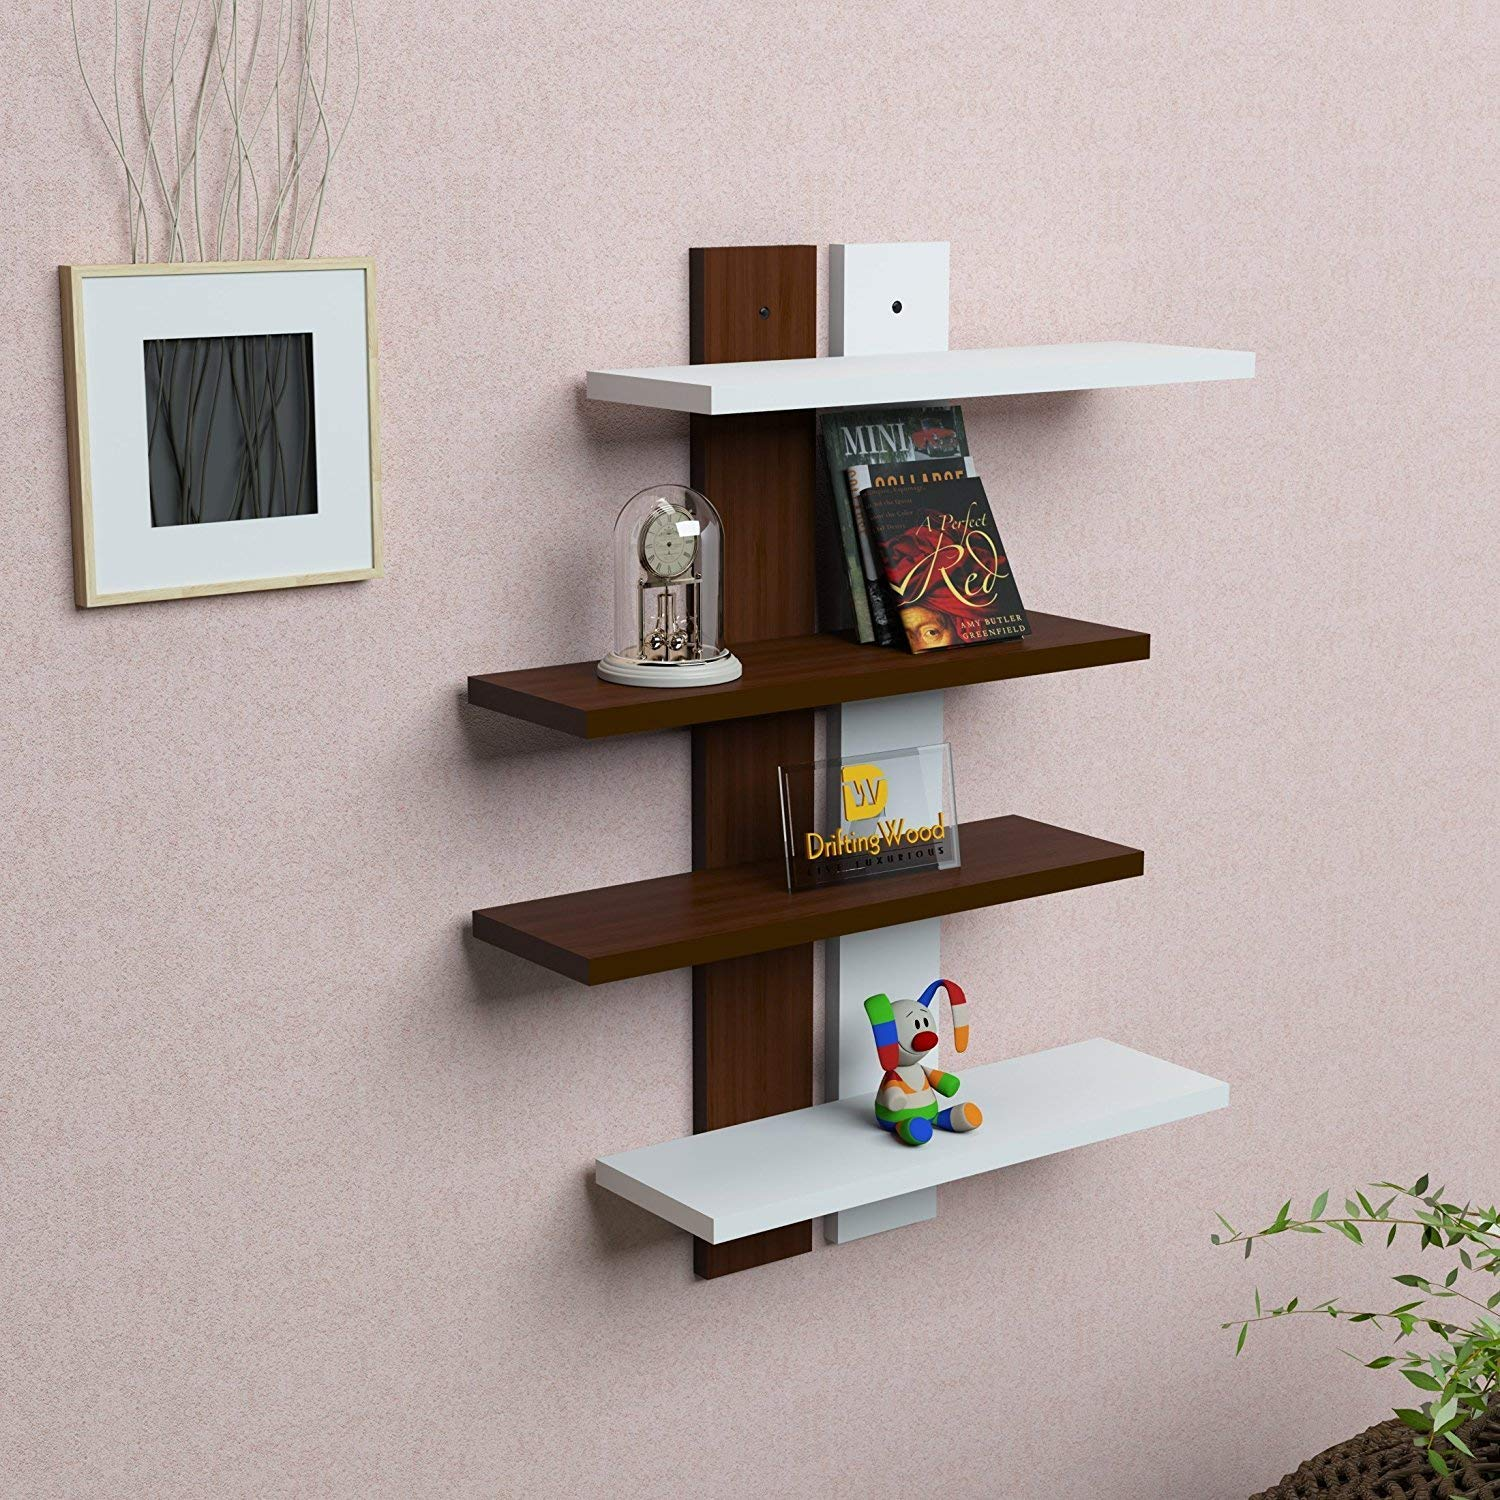 Wall Shelf Design Drifitingwood Wooden Ladder Shape 4 Tier Wall Shelf Designer Wall Rack Shelves Brown White